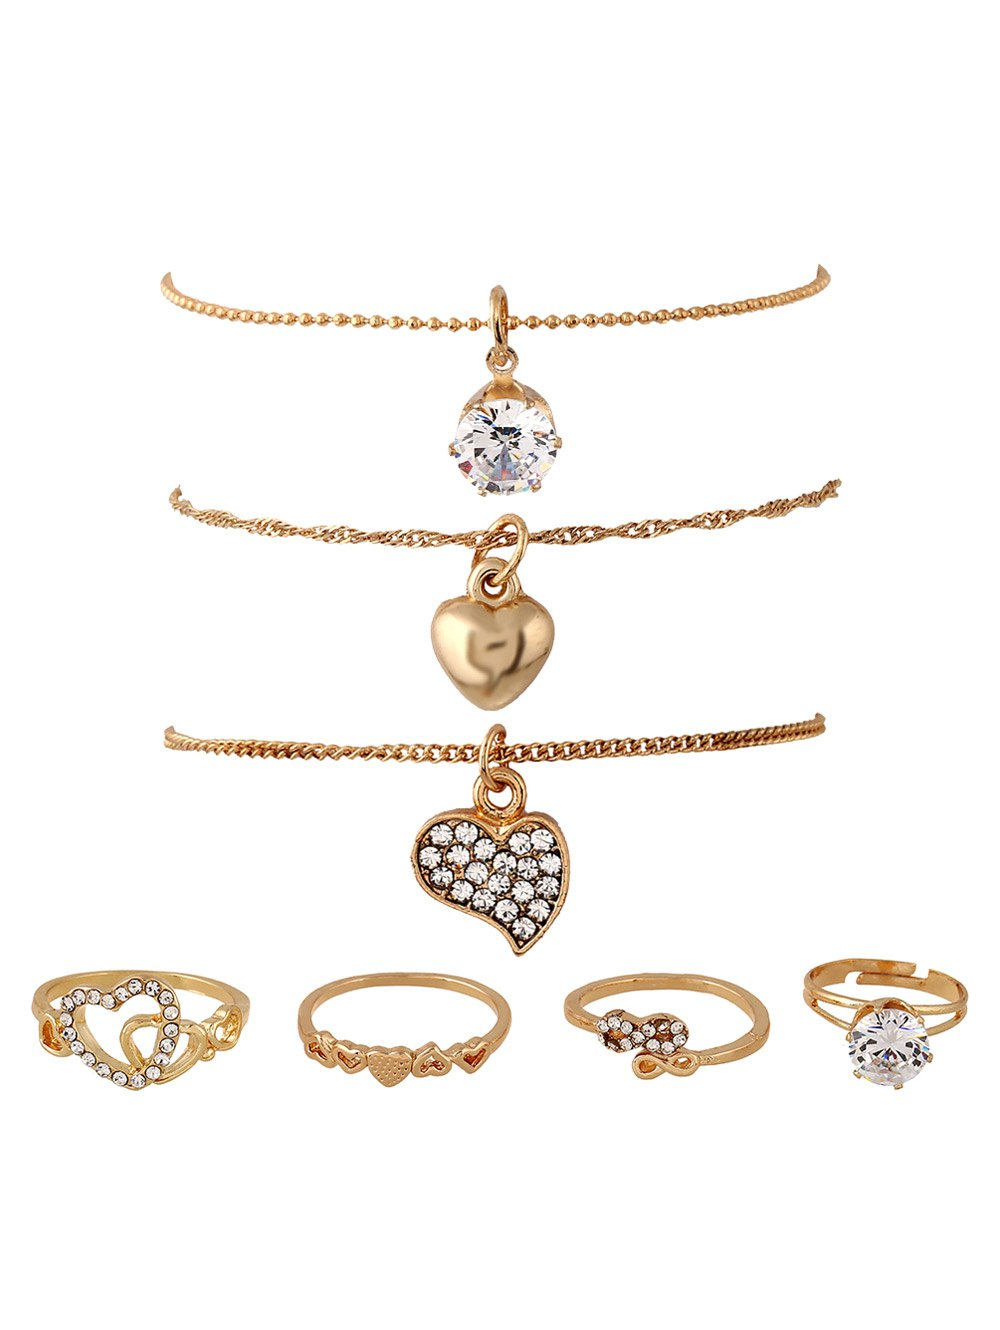 Rhinestone Infinite Heart Rings and Necklaces